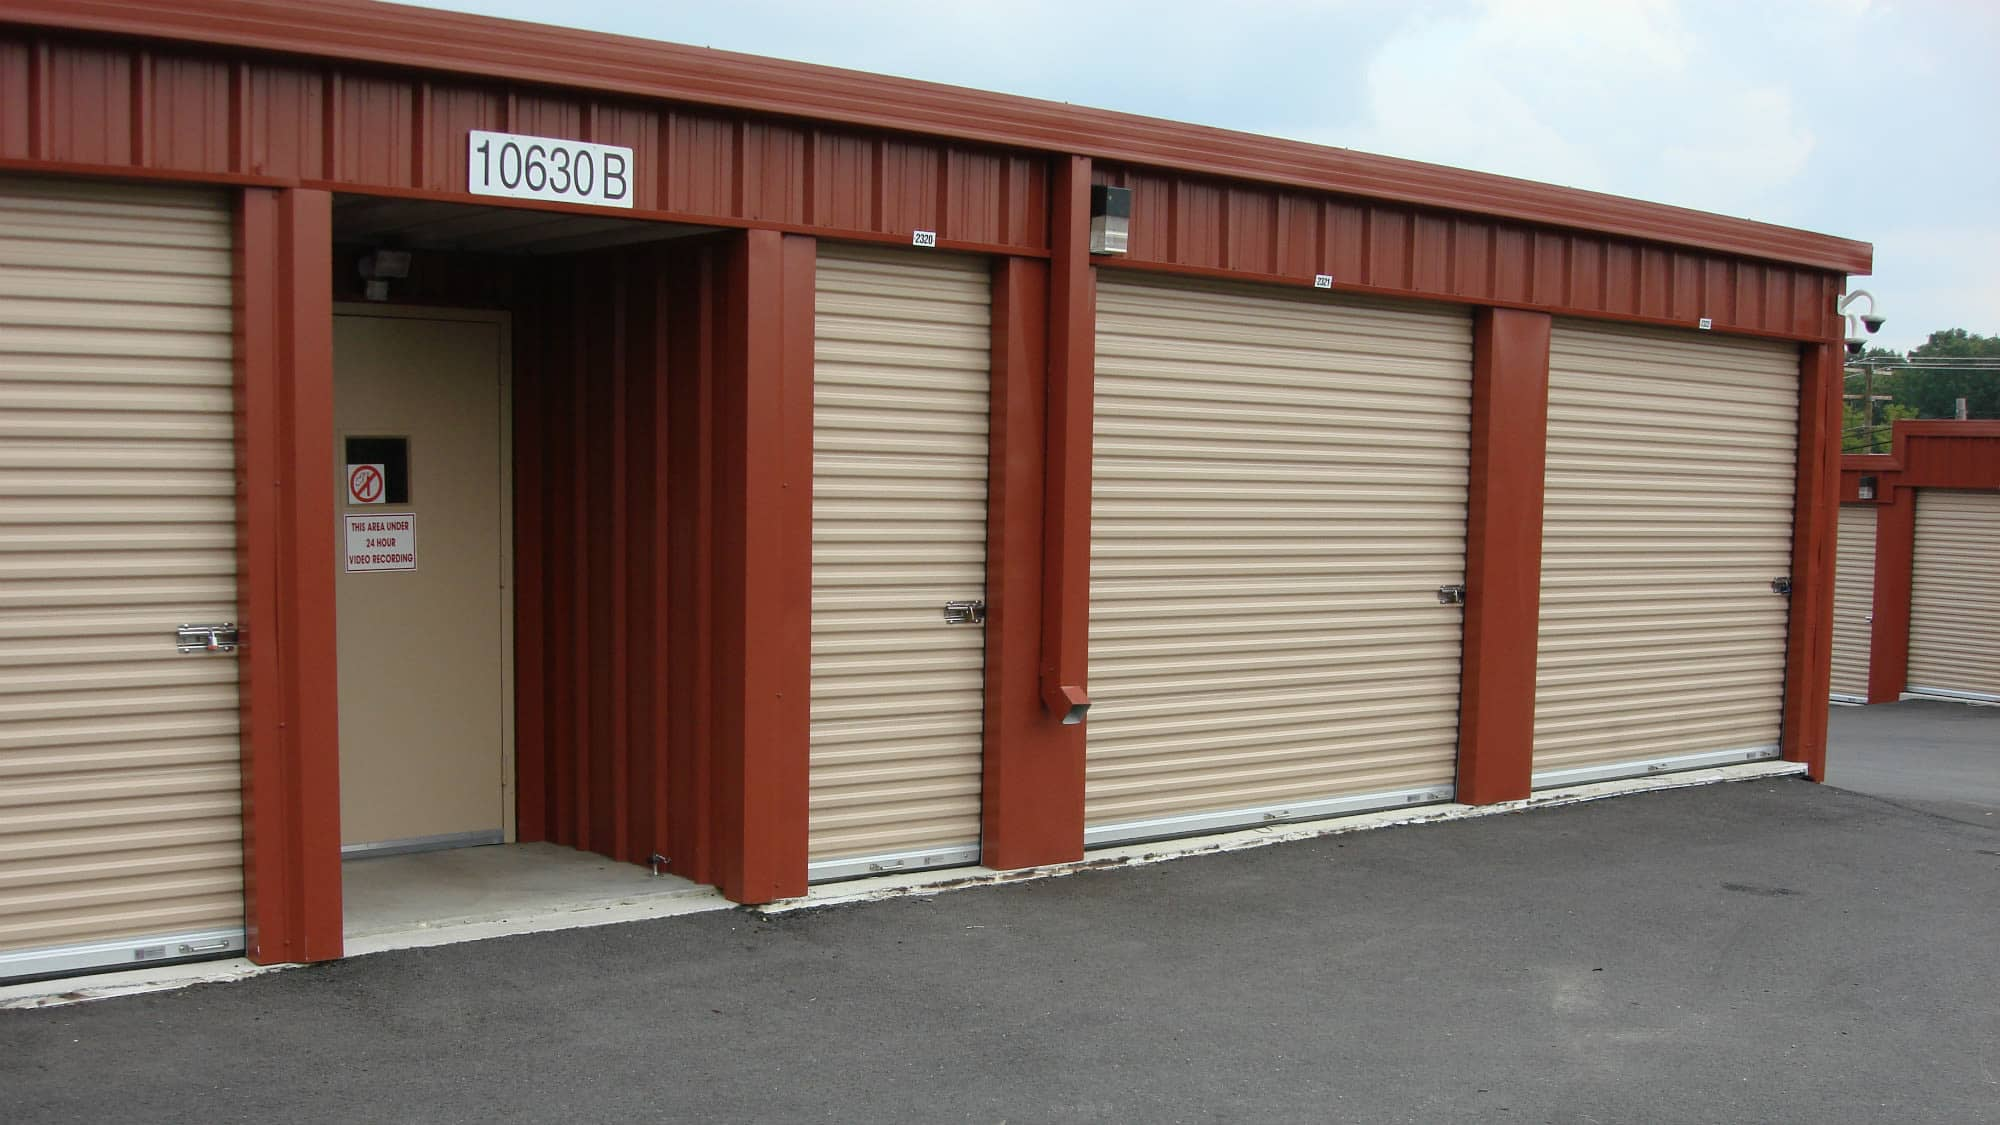 Open unit at New Market Mini Storage in New Market, Maryland